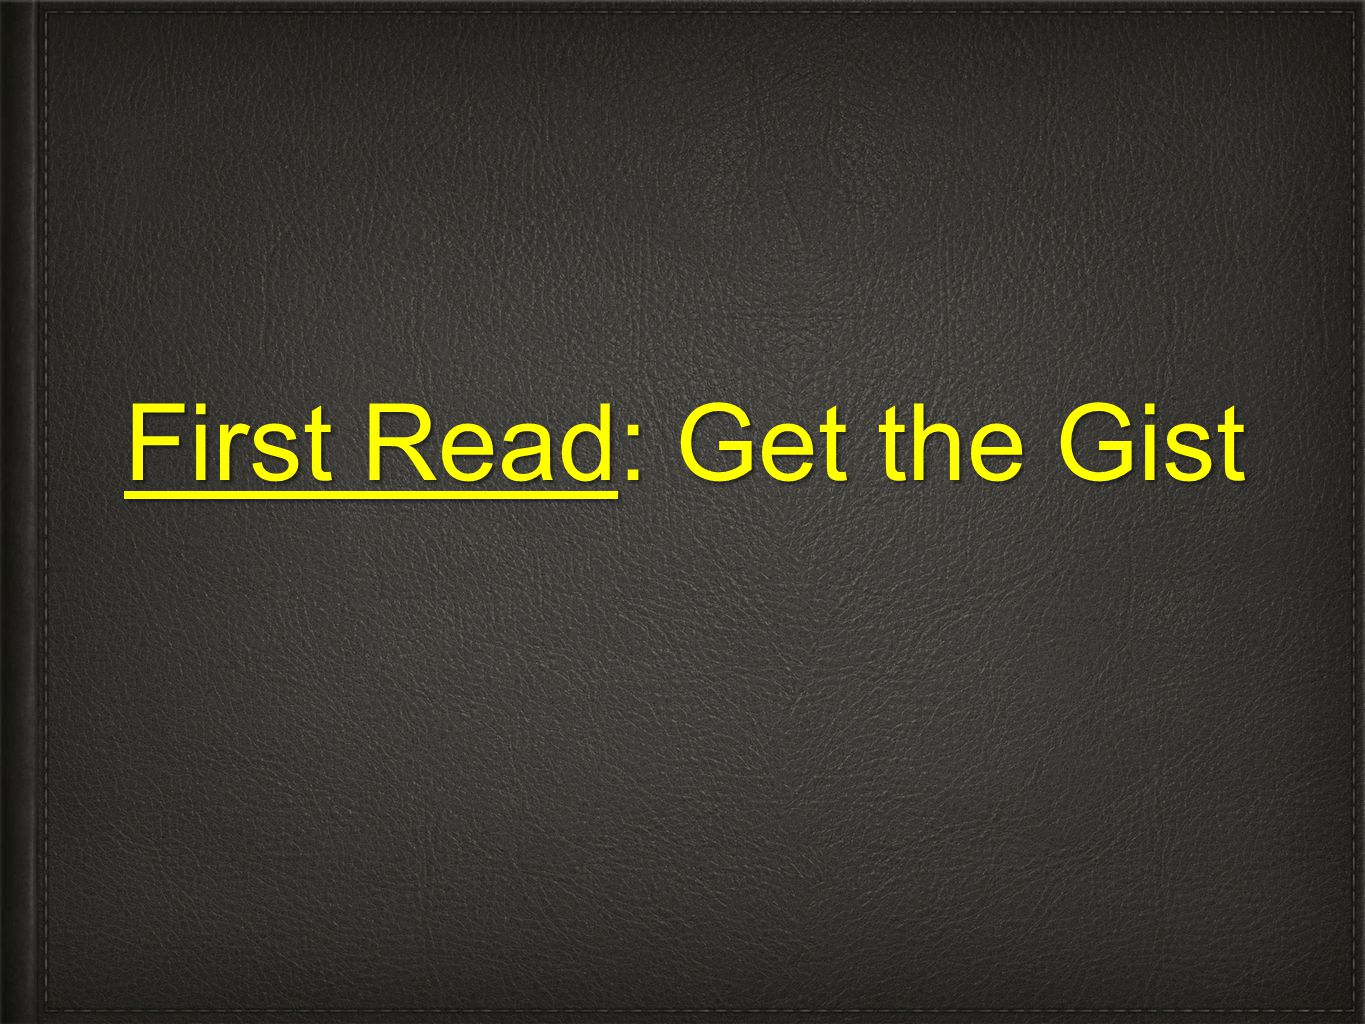 First Read: Get the Gist